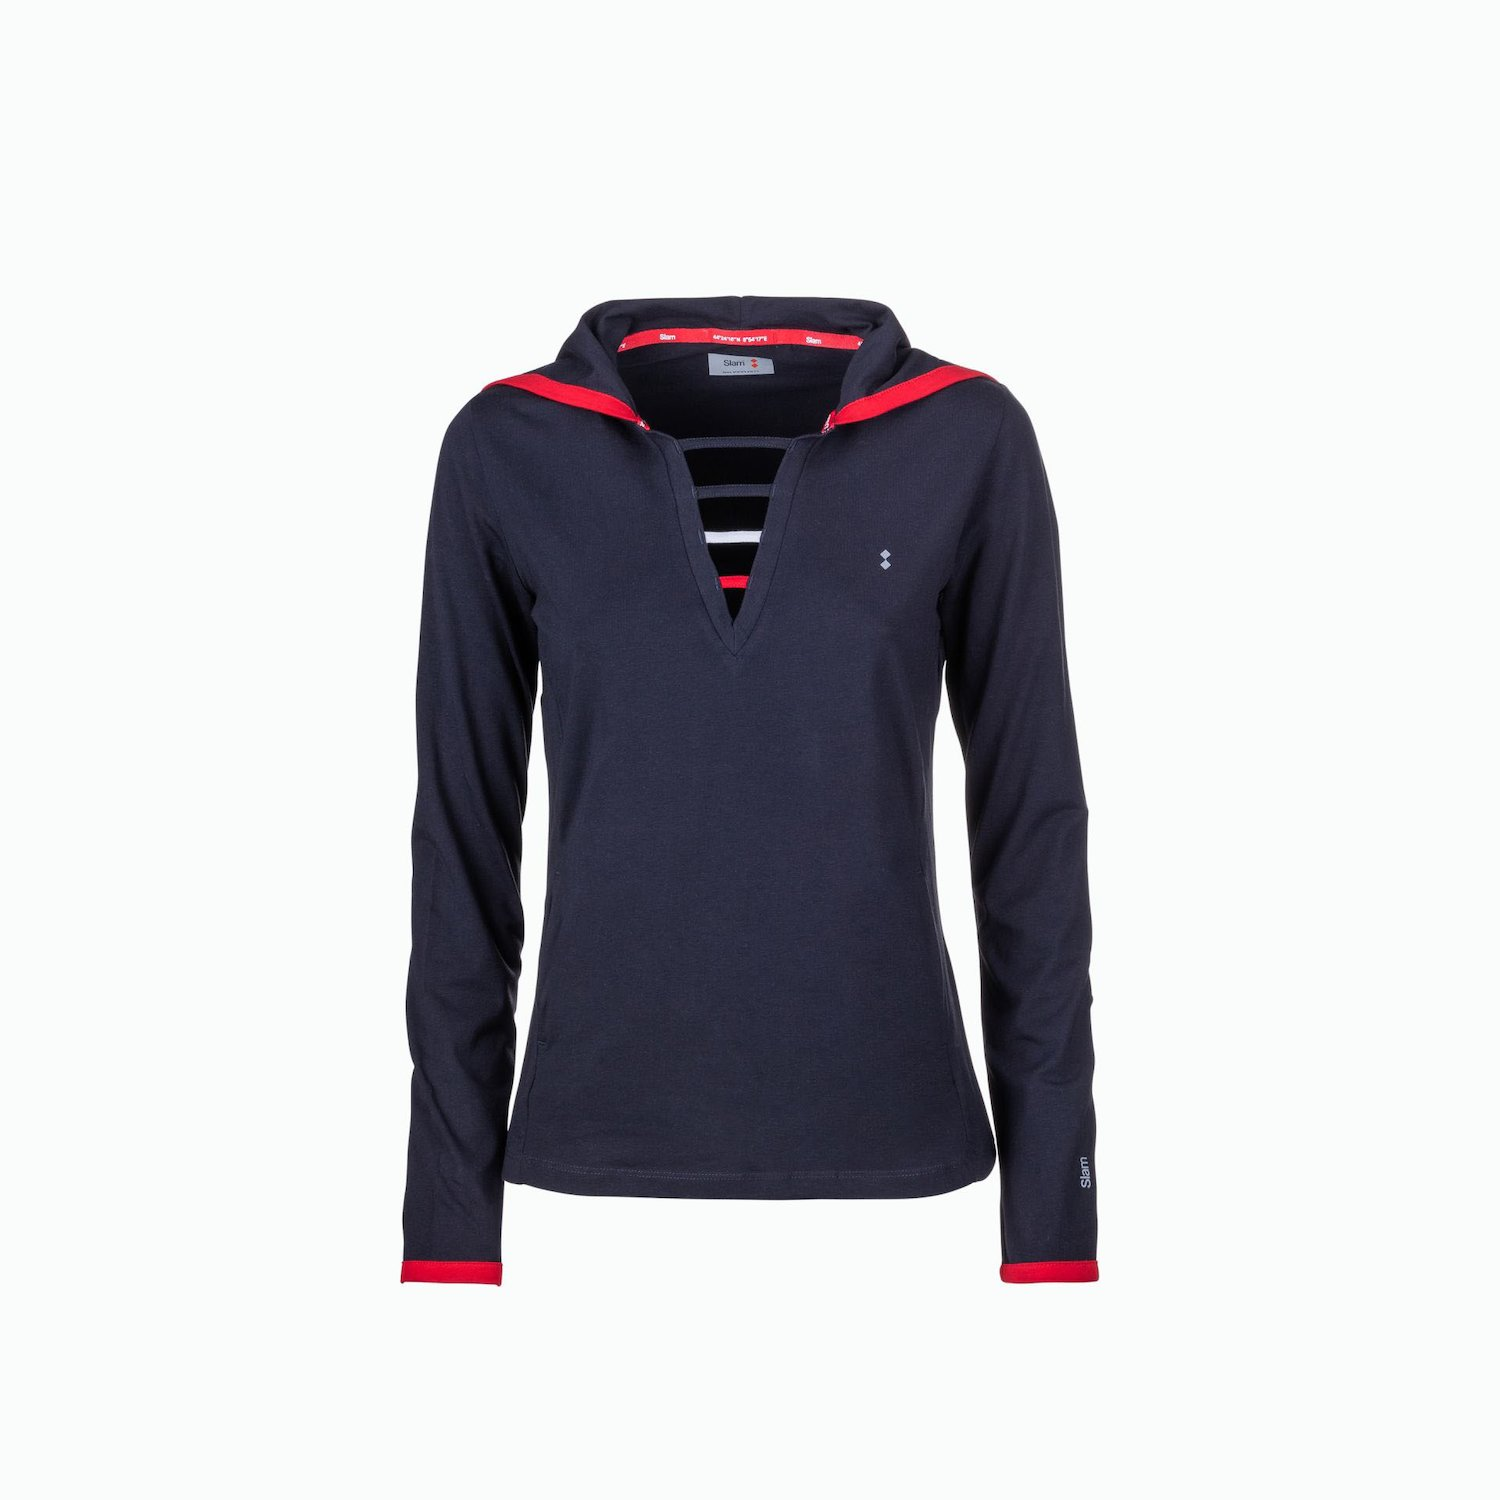 C124 Sweatshirt - Navy